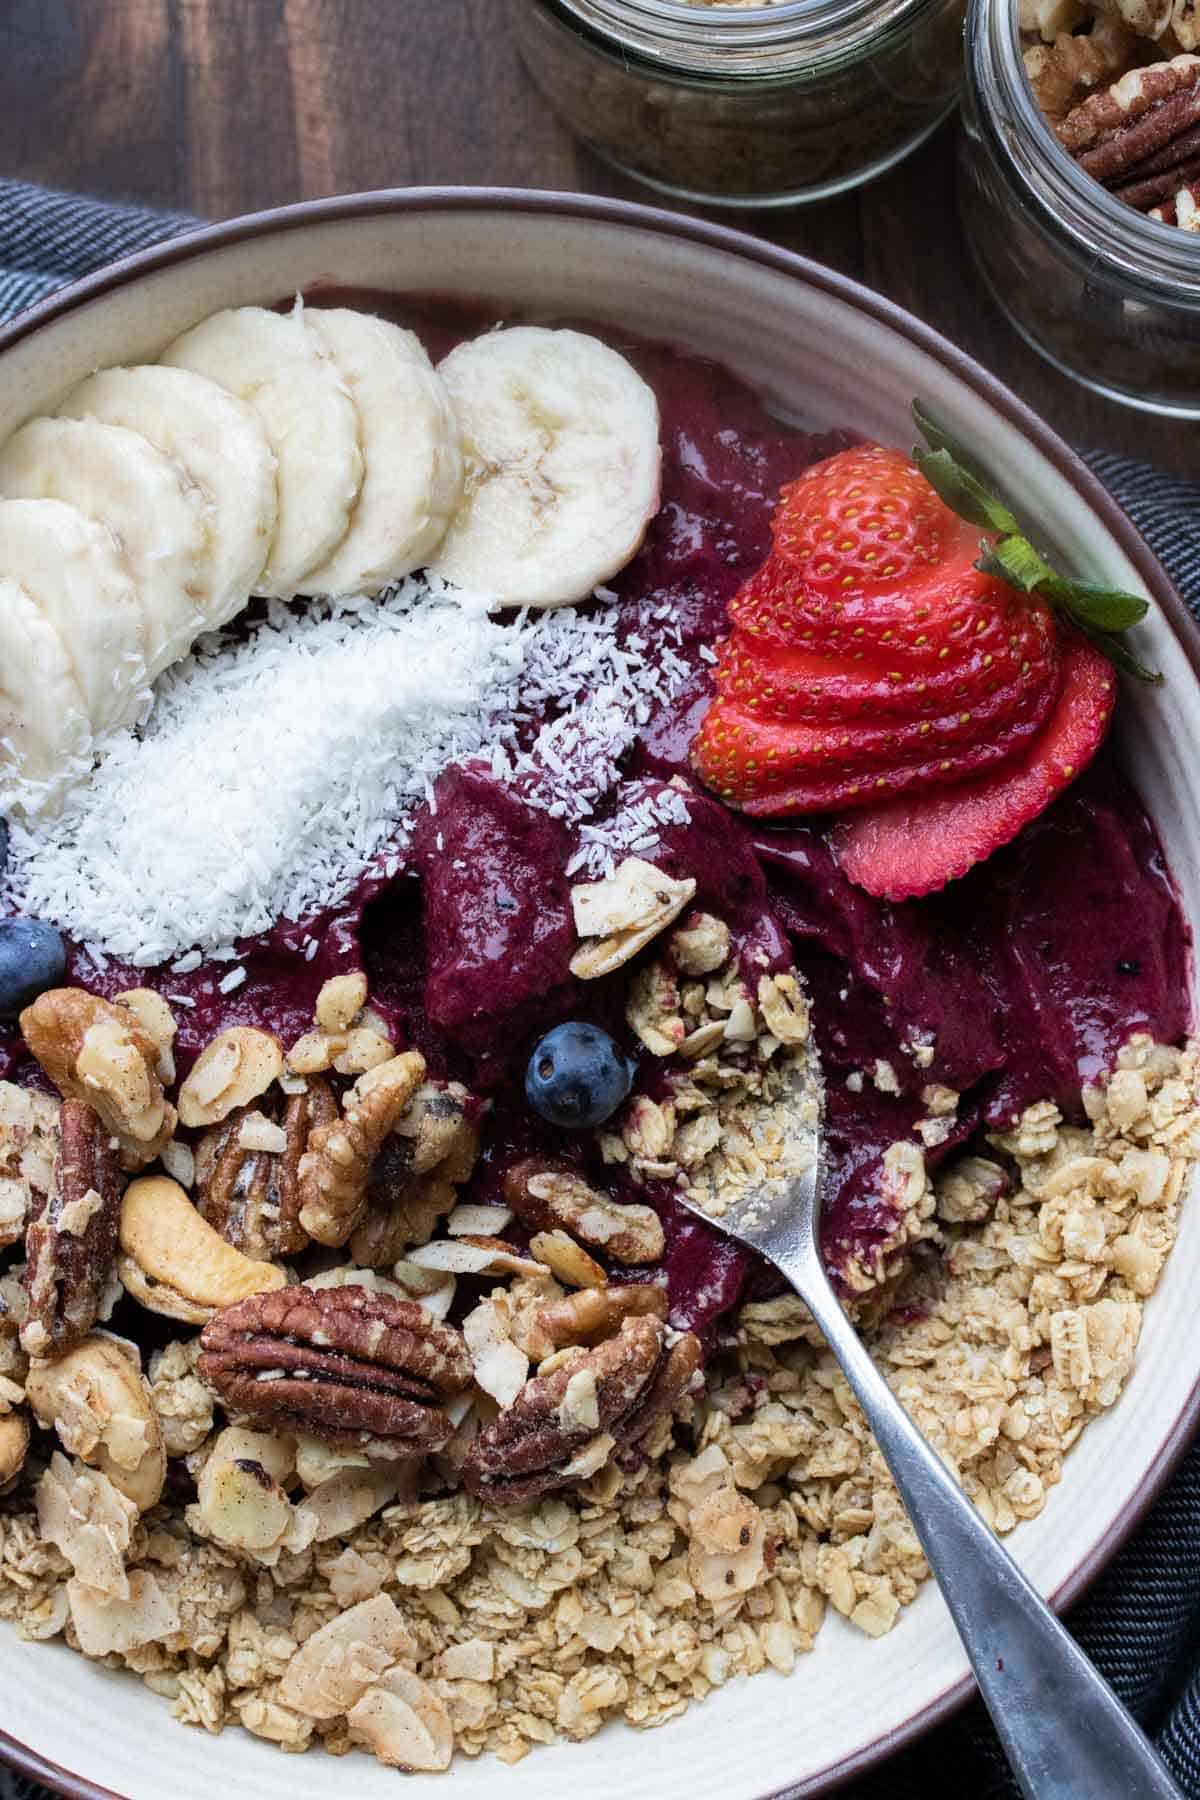 Spoon getting a bite of a smoothie bowl loaded with toppings